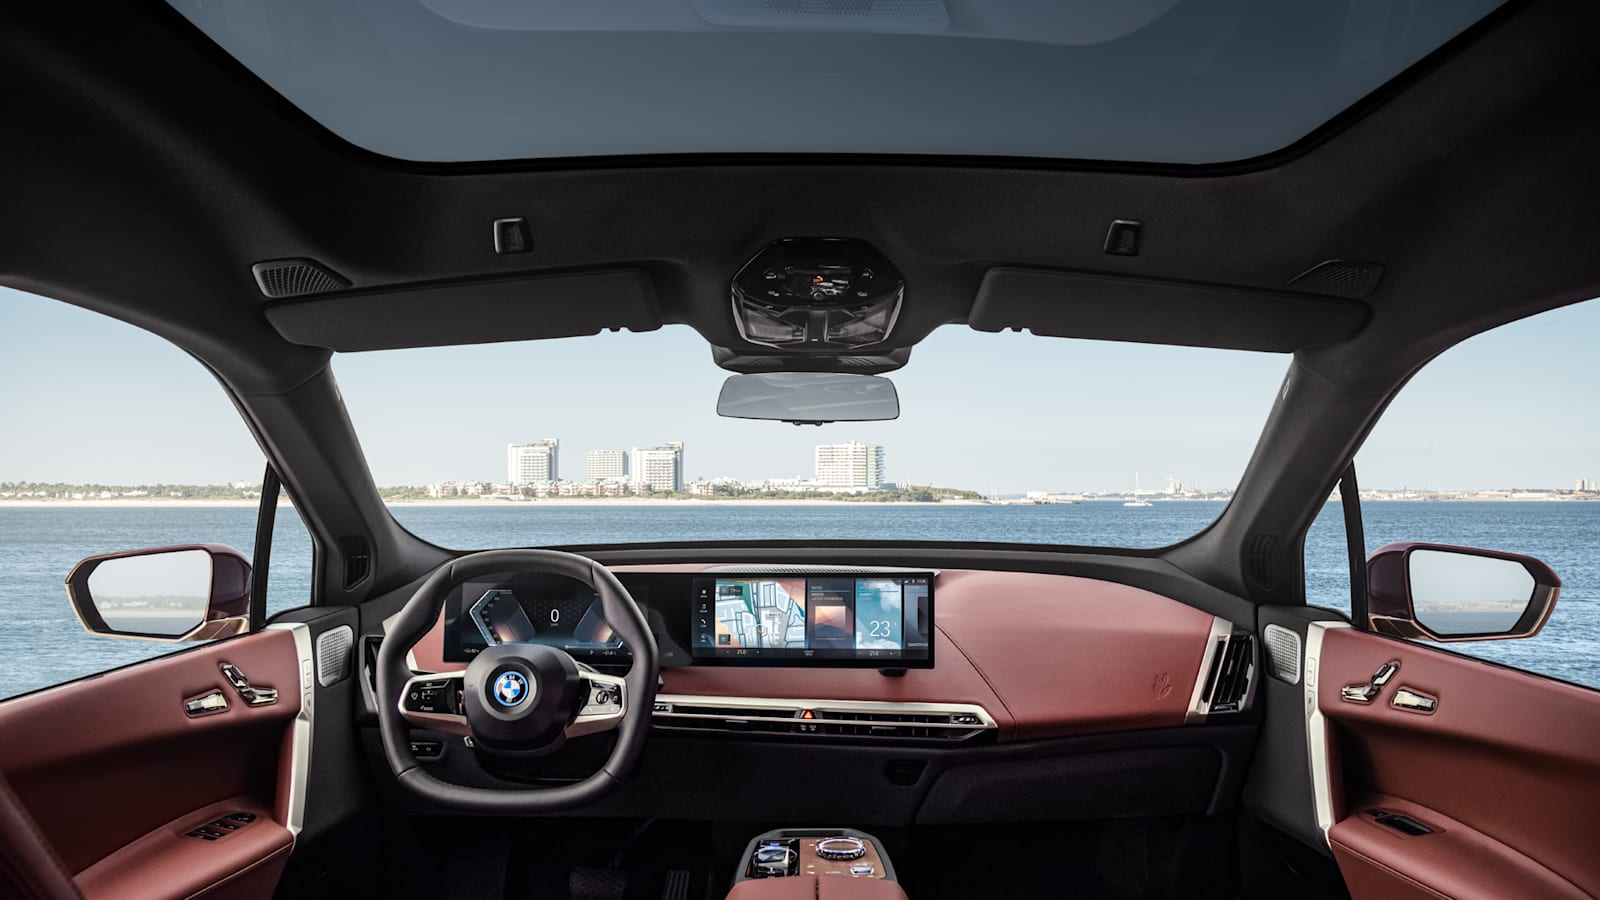 Bmw Ix Interior Wows With Its Design And Materials Choices Autoblog